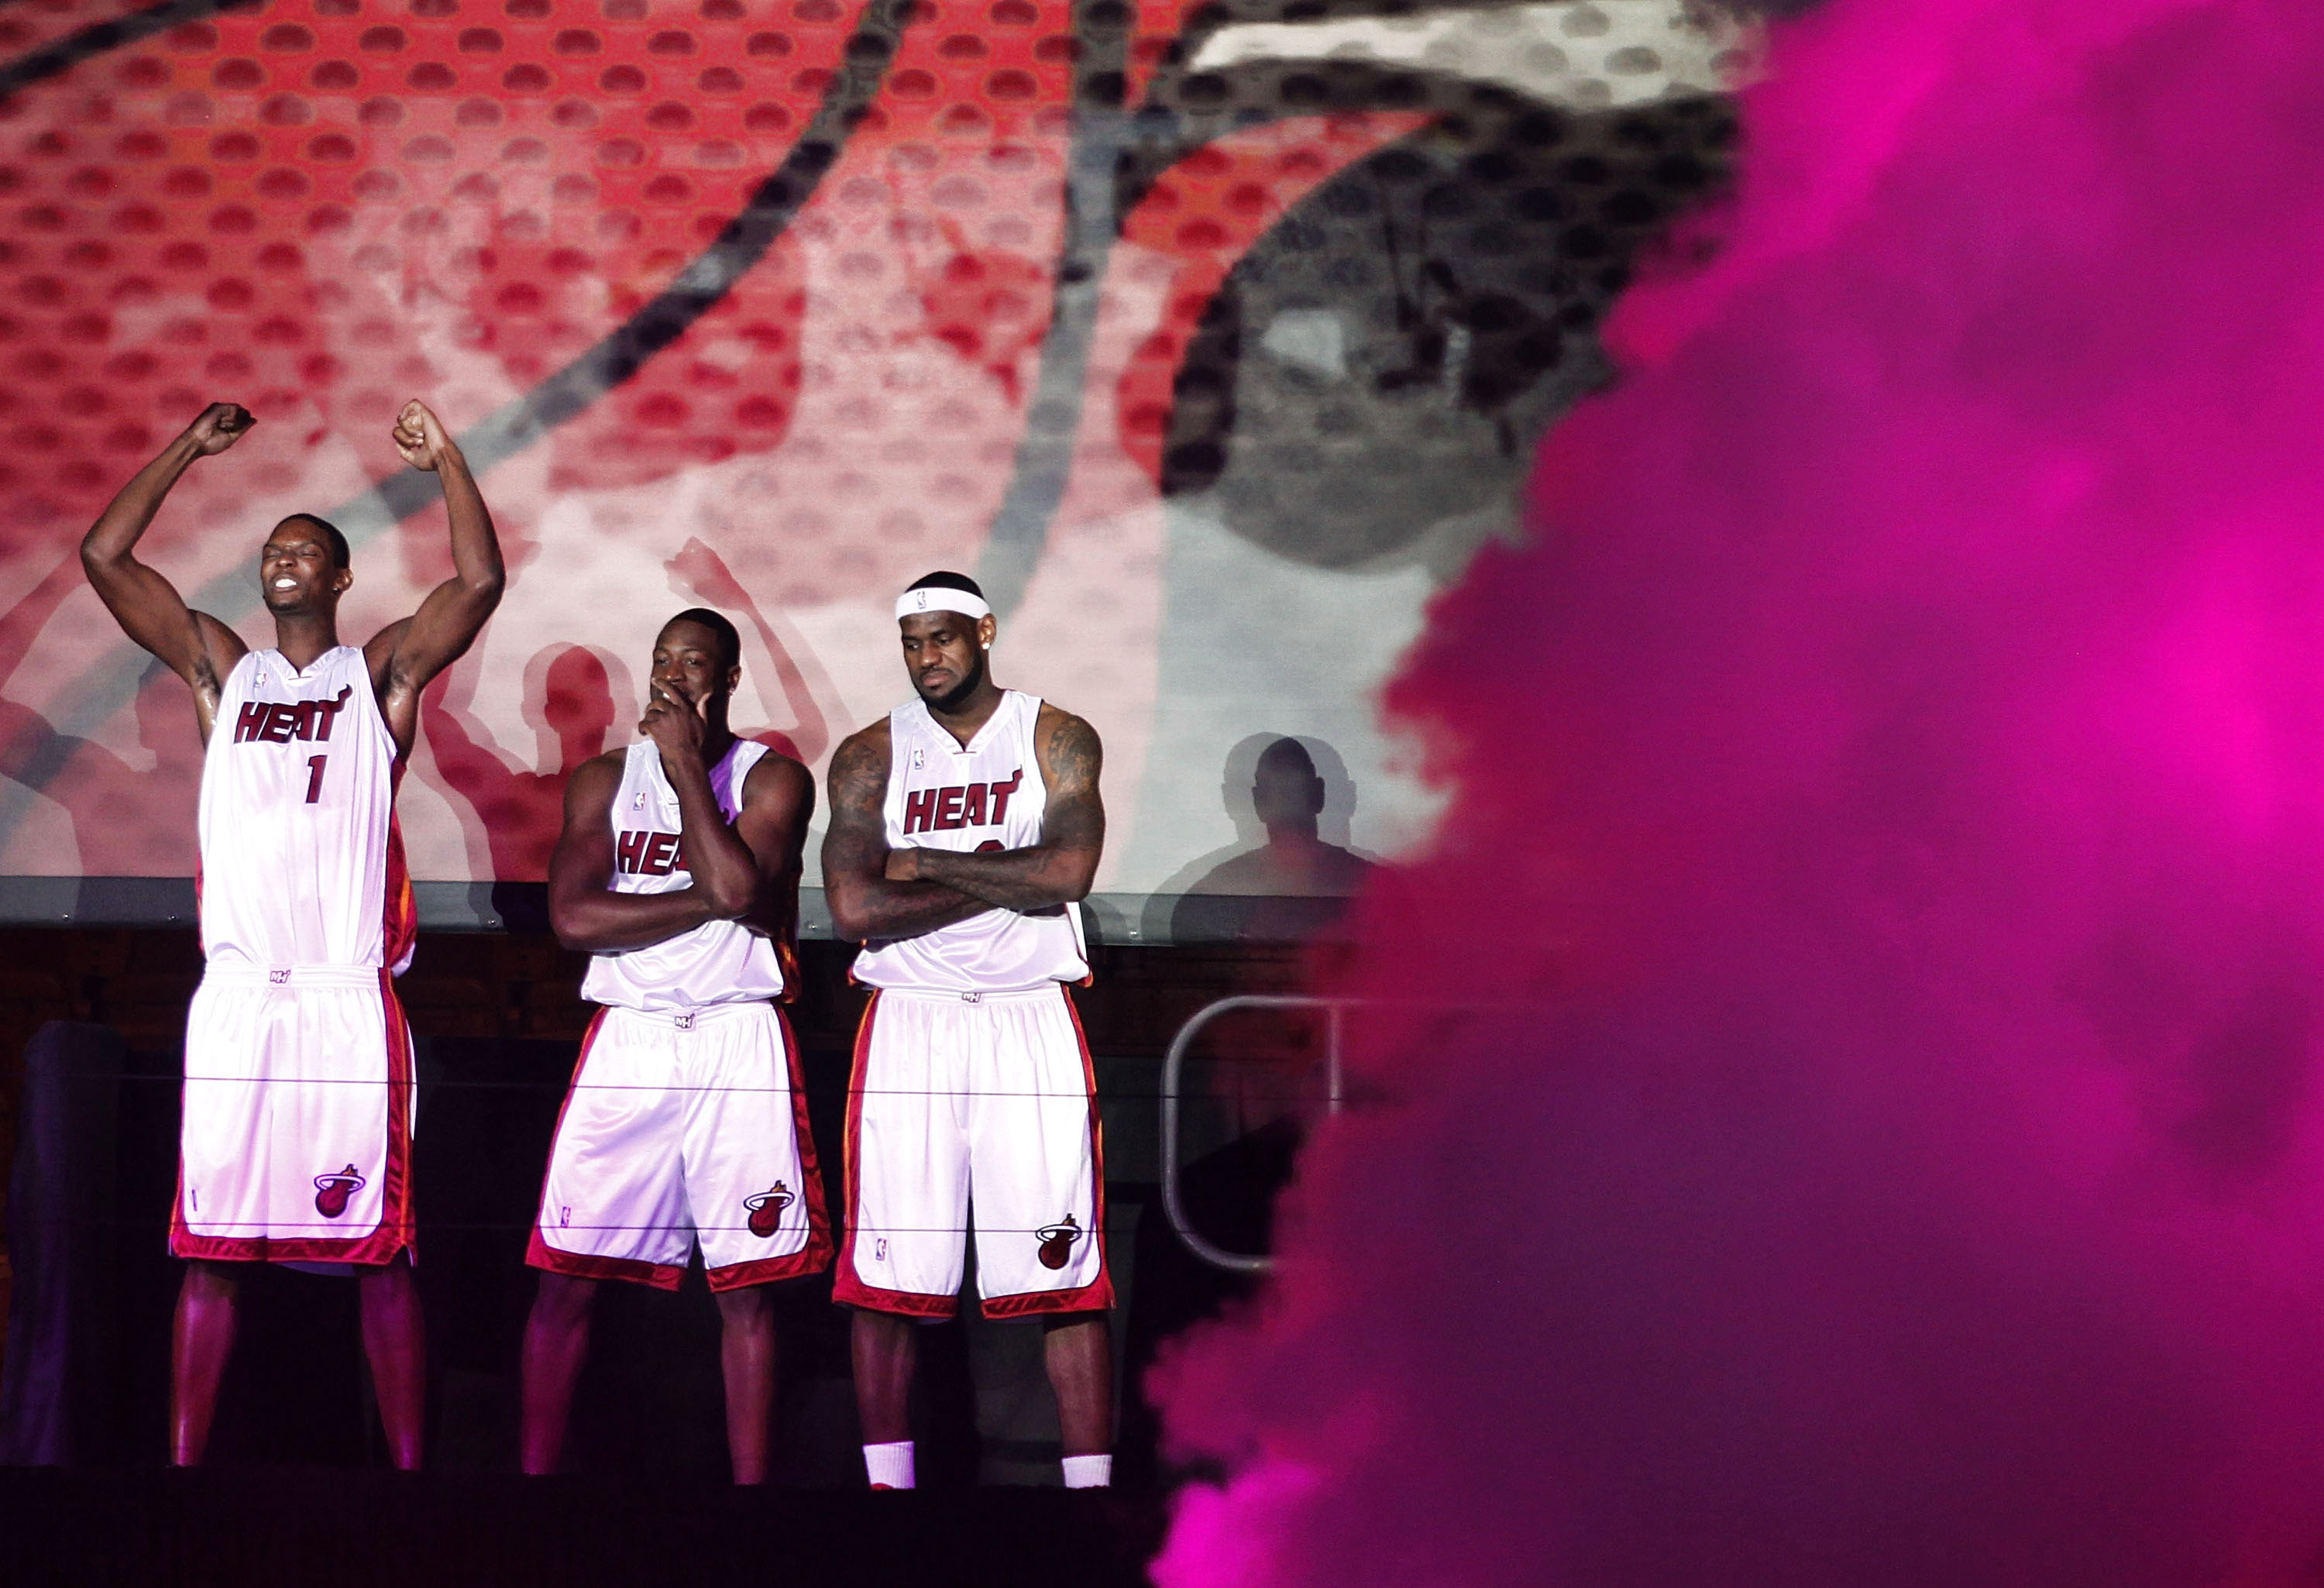 MIAMI - JULY 09:  (L-R) Chris Bosh #1, Dwyane Wade #3, and LeBron James #6 of the Miami Heat are introduced during a welcome party at American Airlines Arena on July 9, 2010 in Miami, Florida.  (Photo by Marc Serota/Getty Images)